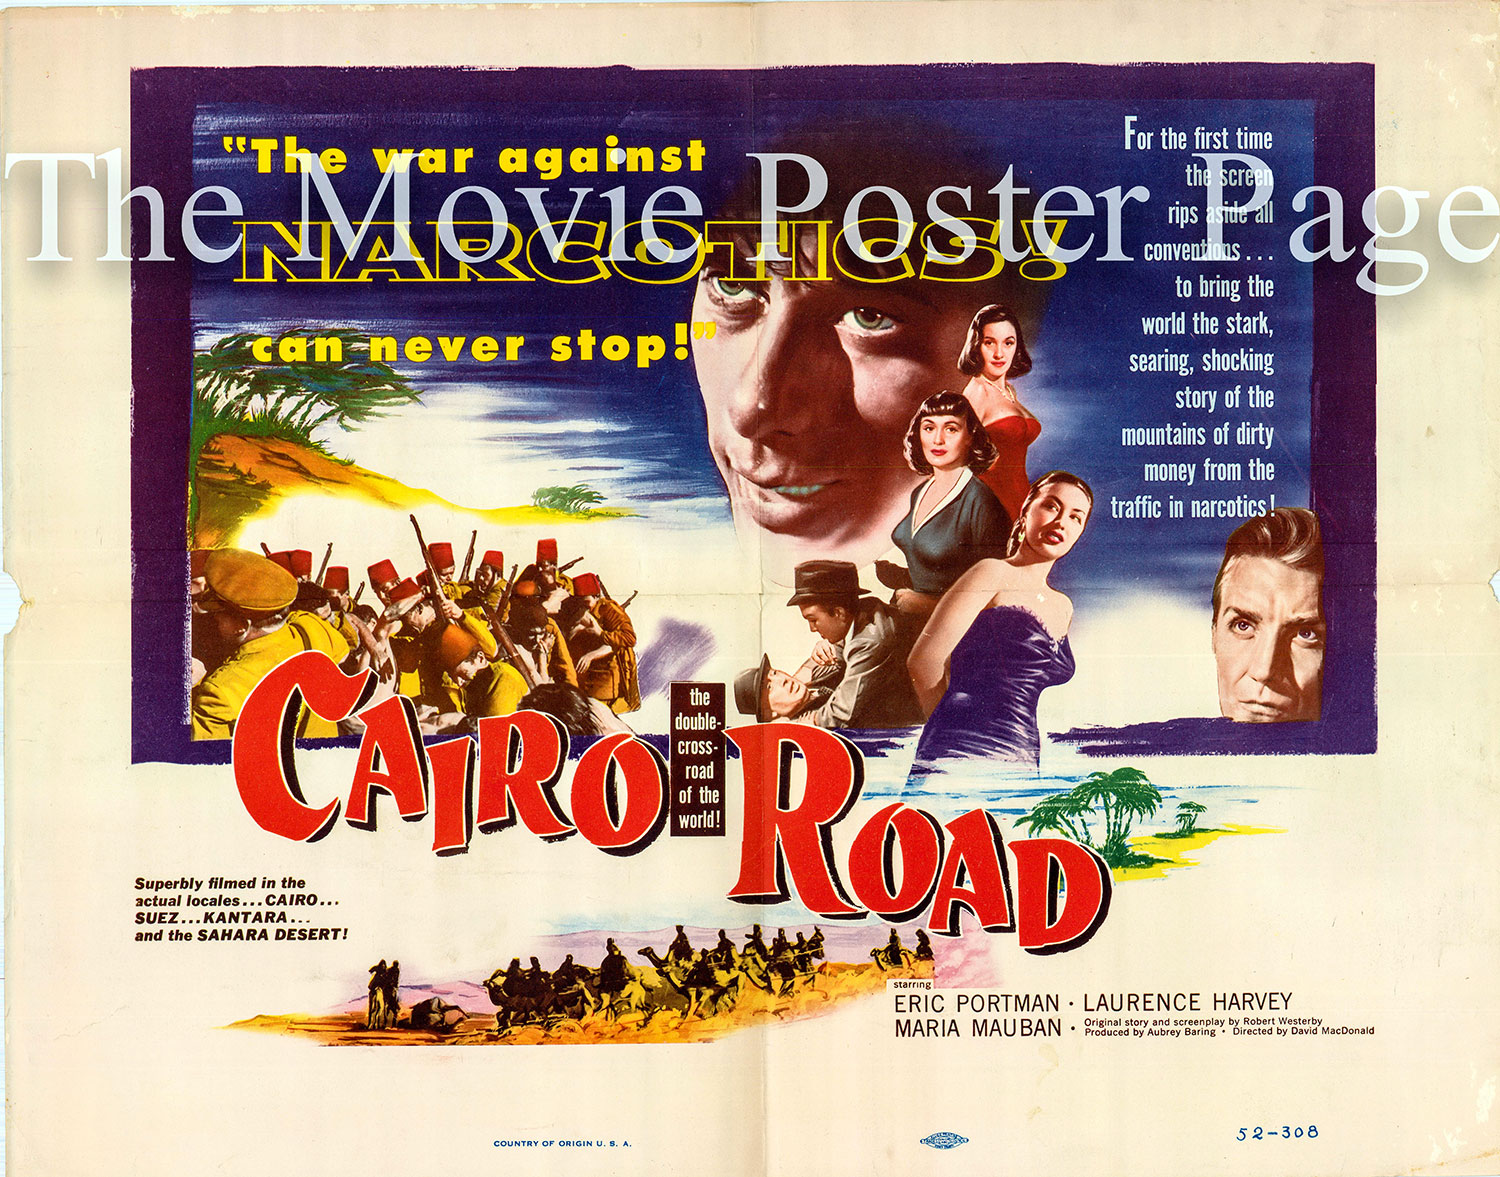 Pictured is a US half-sheet promotional poster for the 1950 David MacDonald film Cairo Road starring Eric Portman.